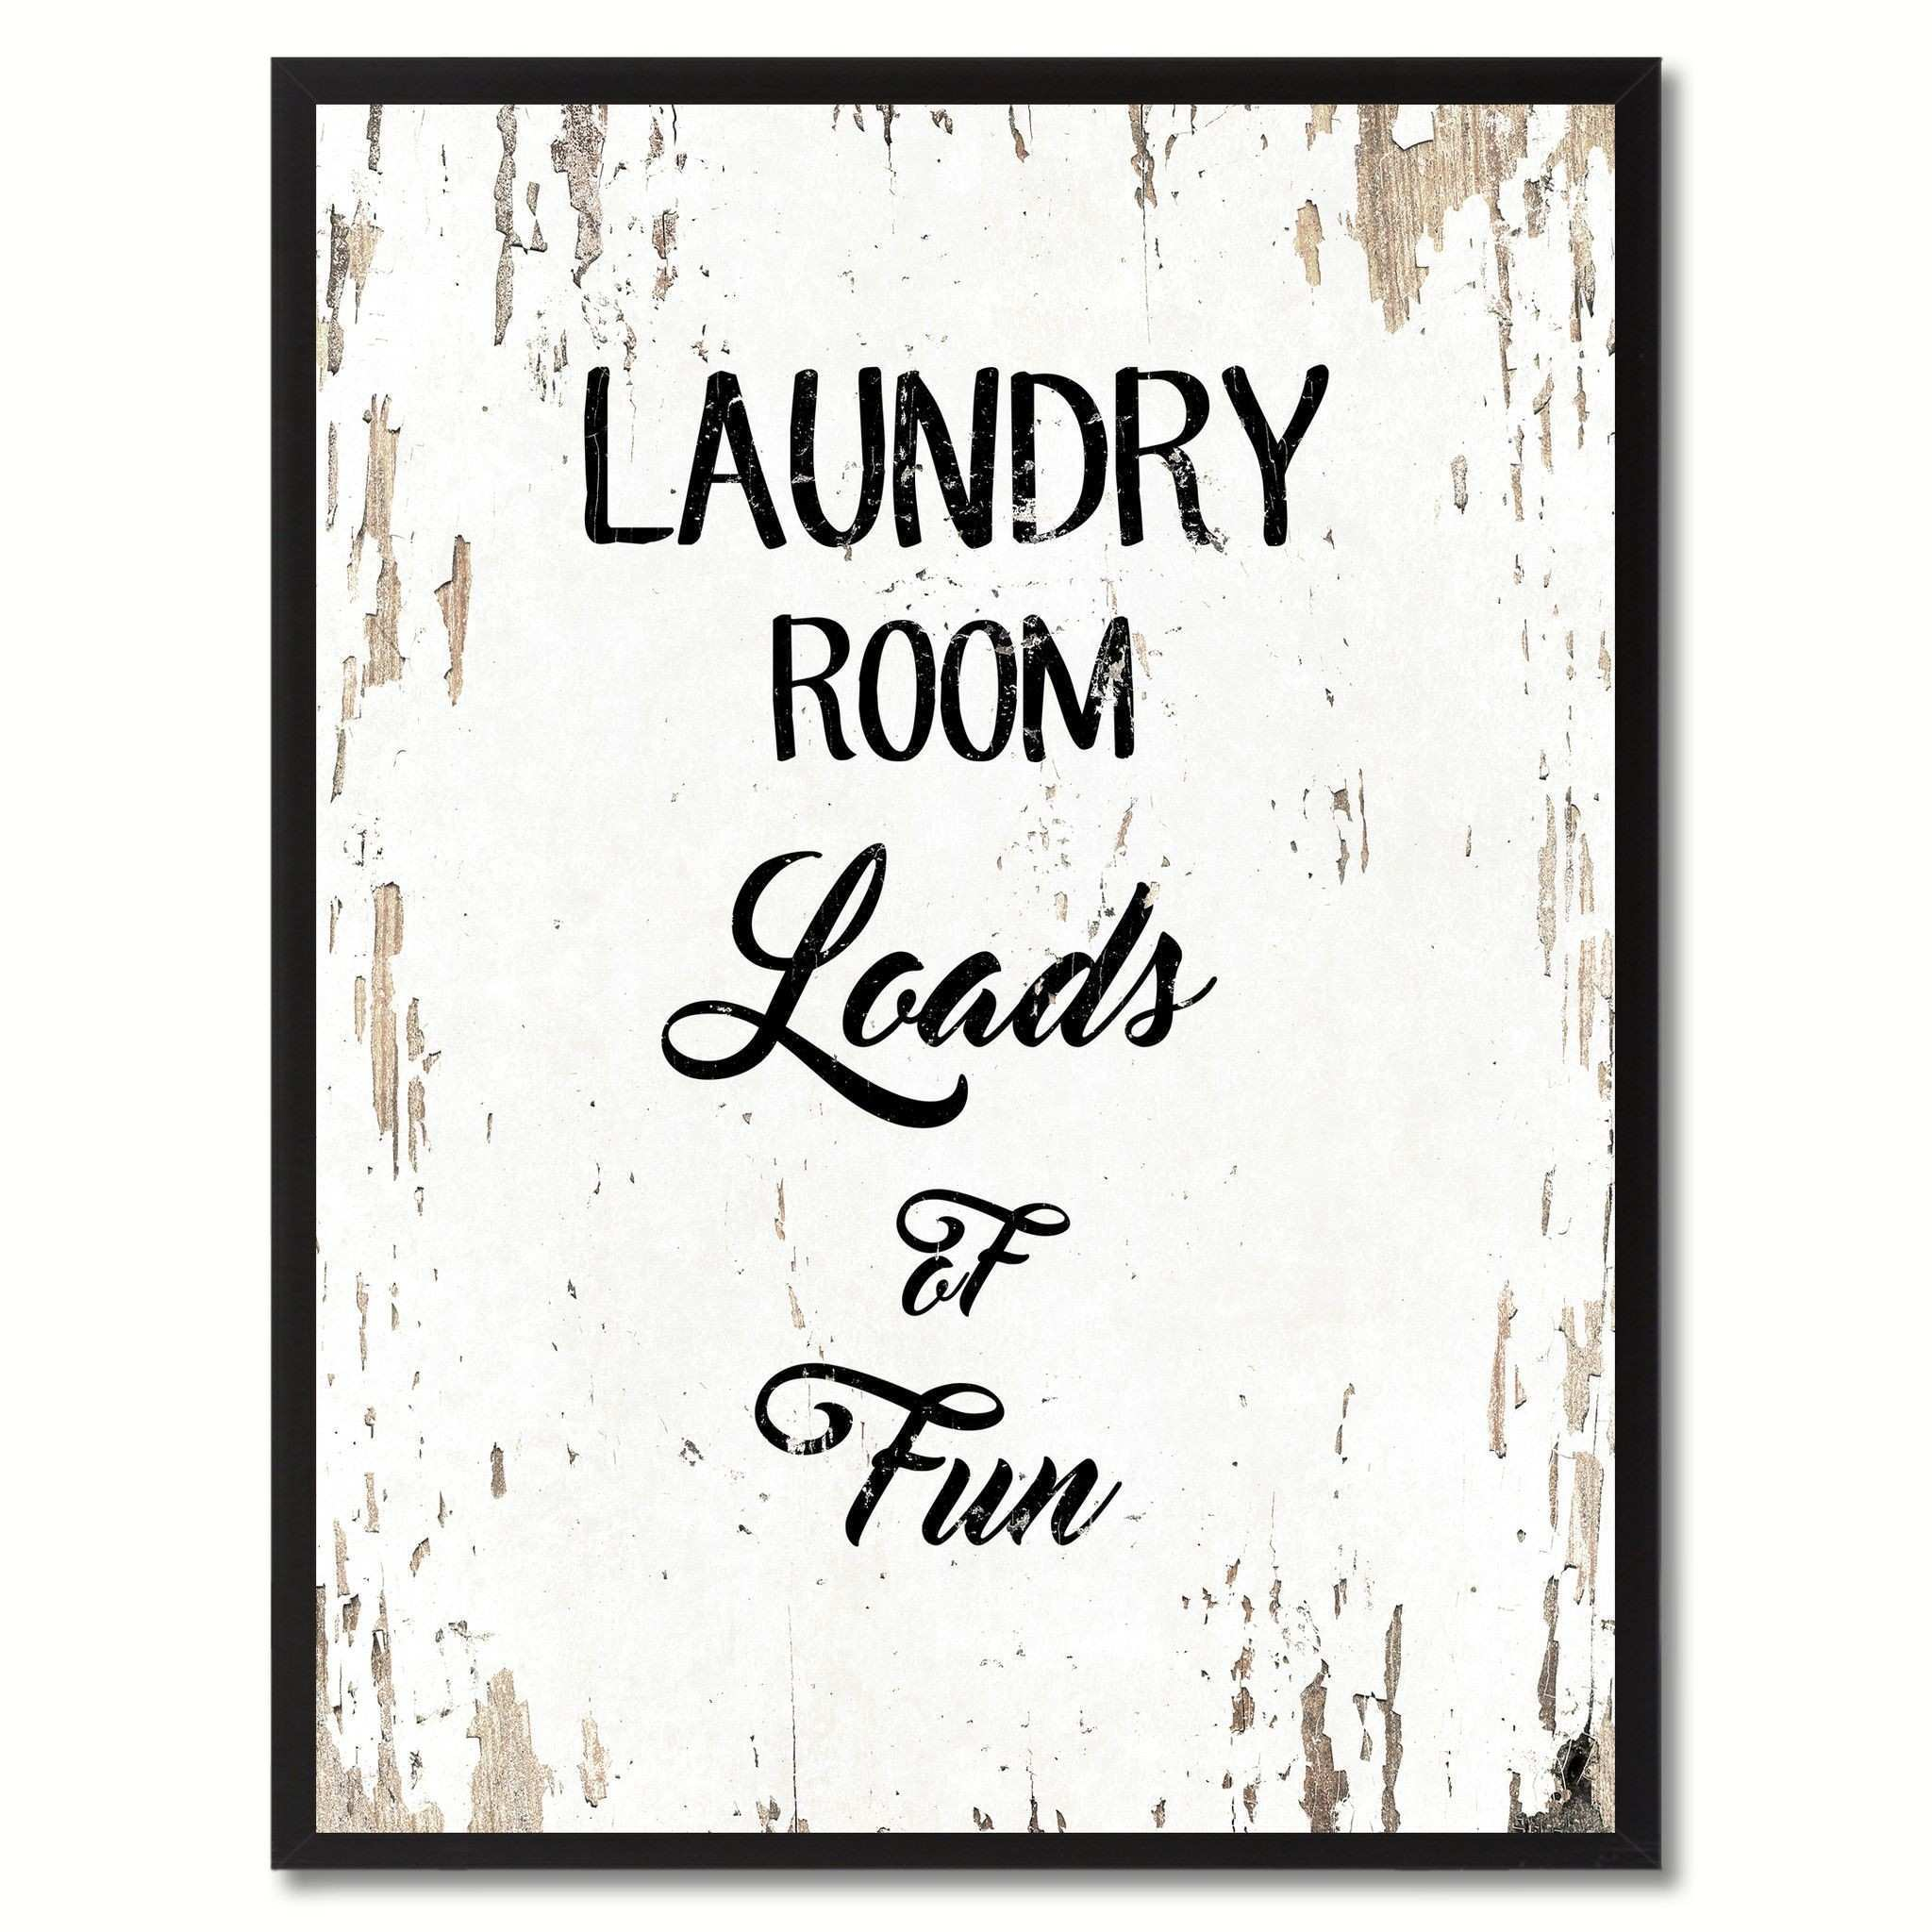 Laundry room loads of fun Funny Quote Saying Gift Ideas Home Decor